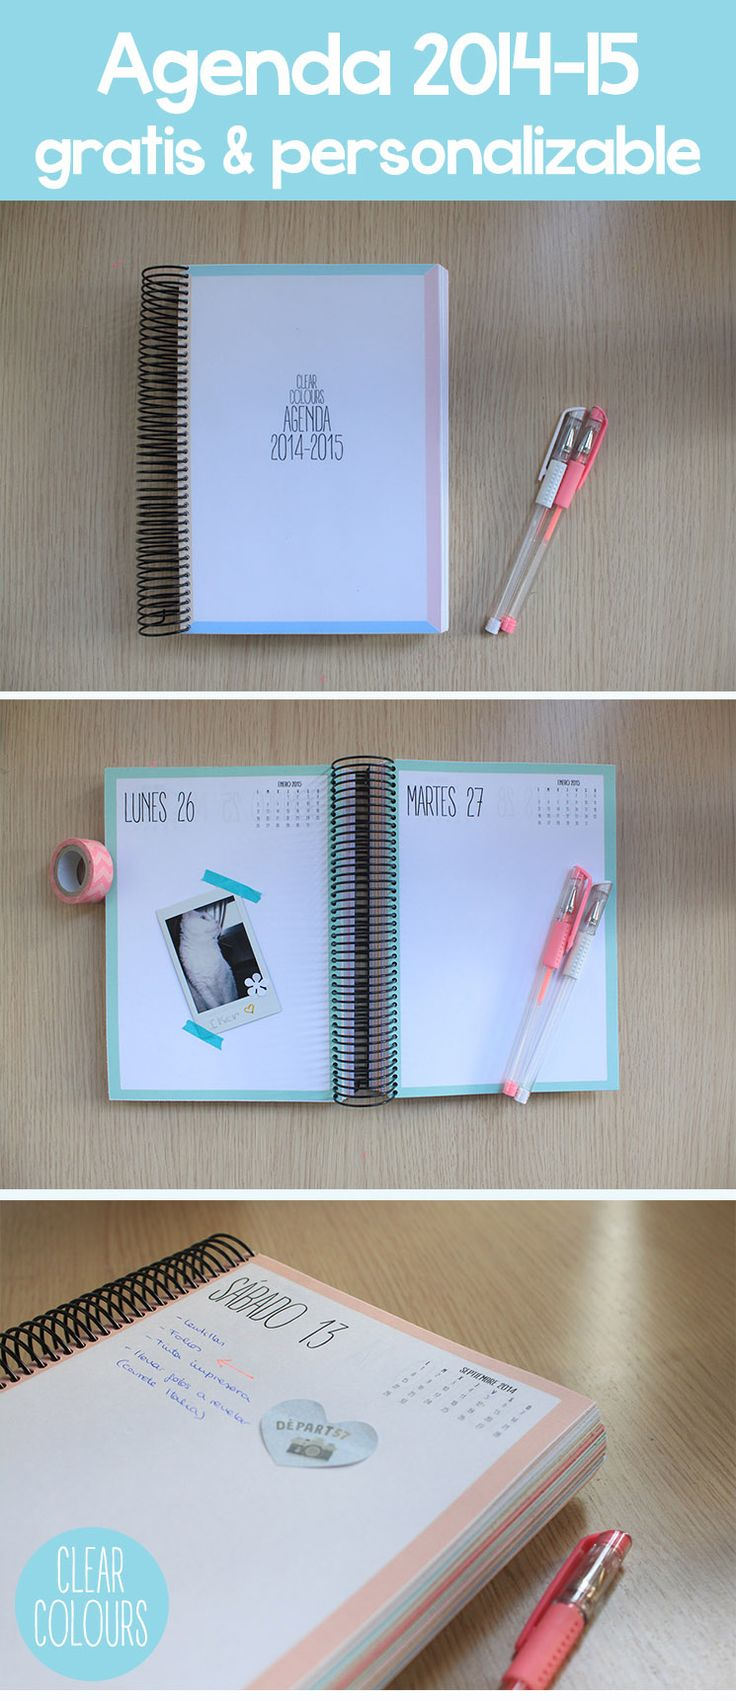 Clear Colours: Agenda 2014-2015 Gratis y personalizable